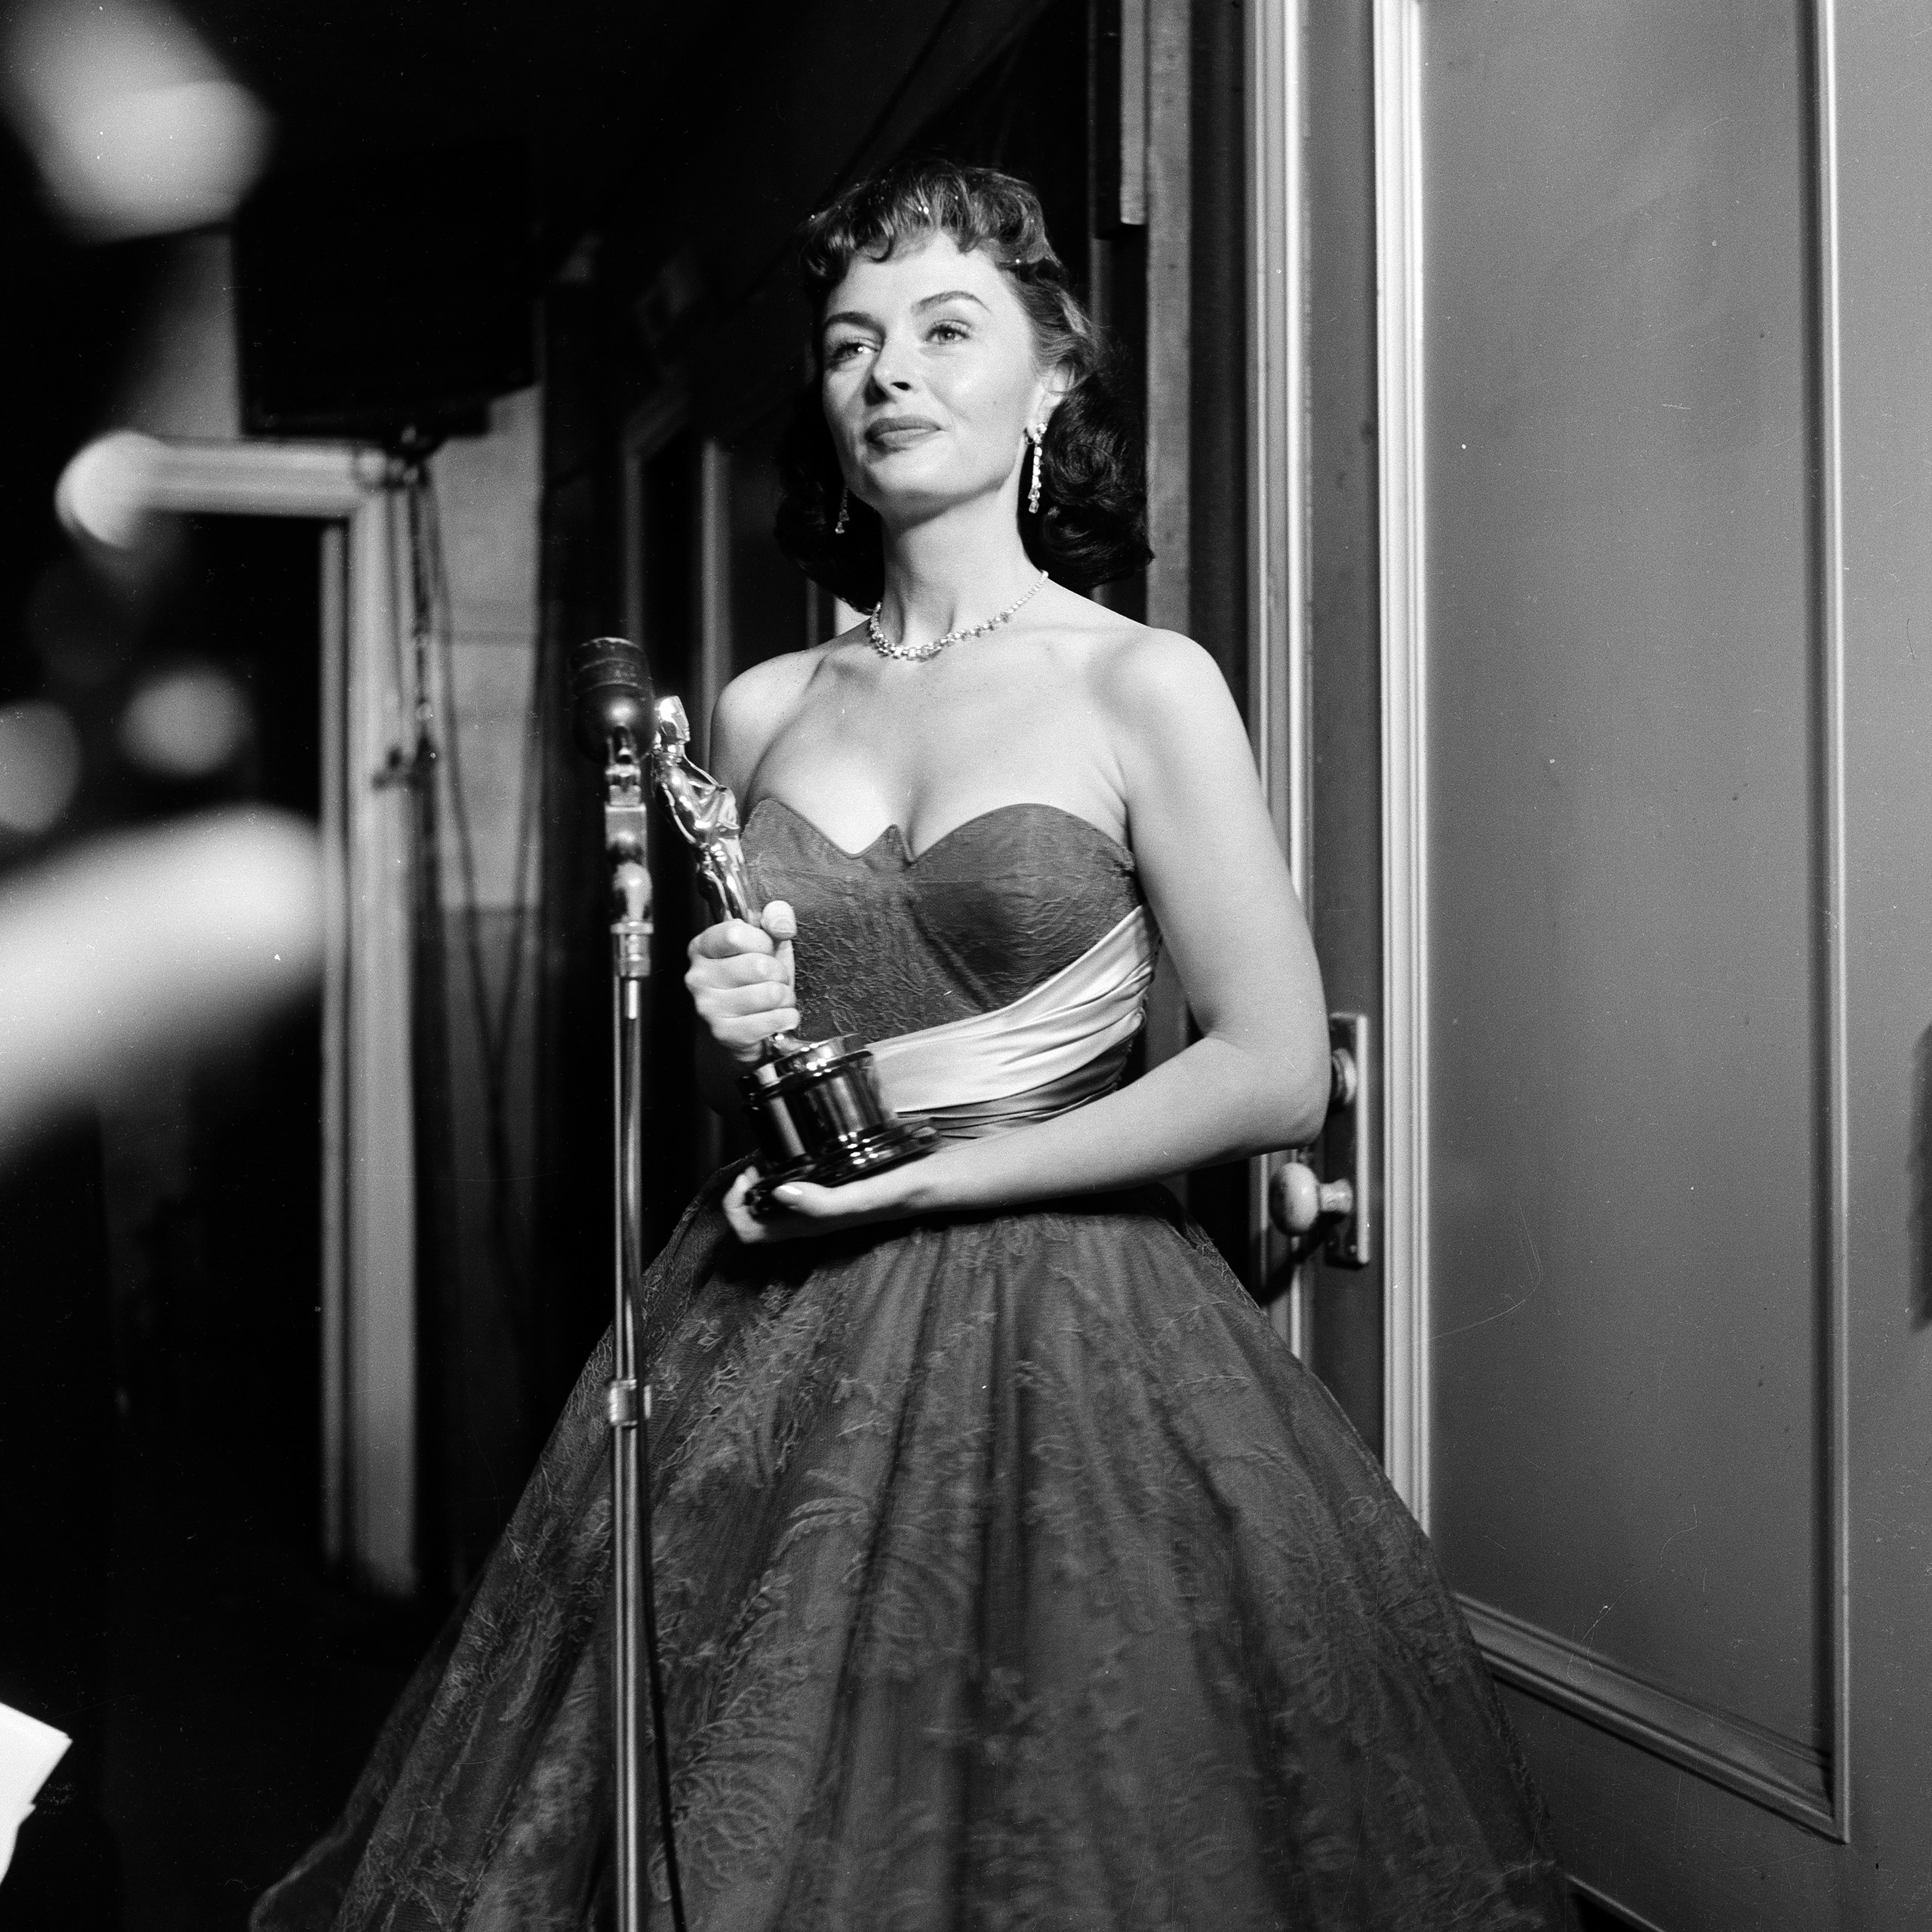 Donna Reed poses with her Oscar for Best Supporting Actress in From Here to Eternity at the Academy Awards, 1954.